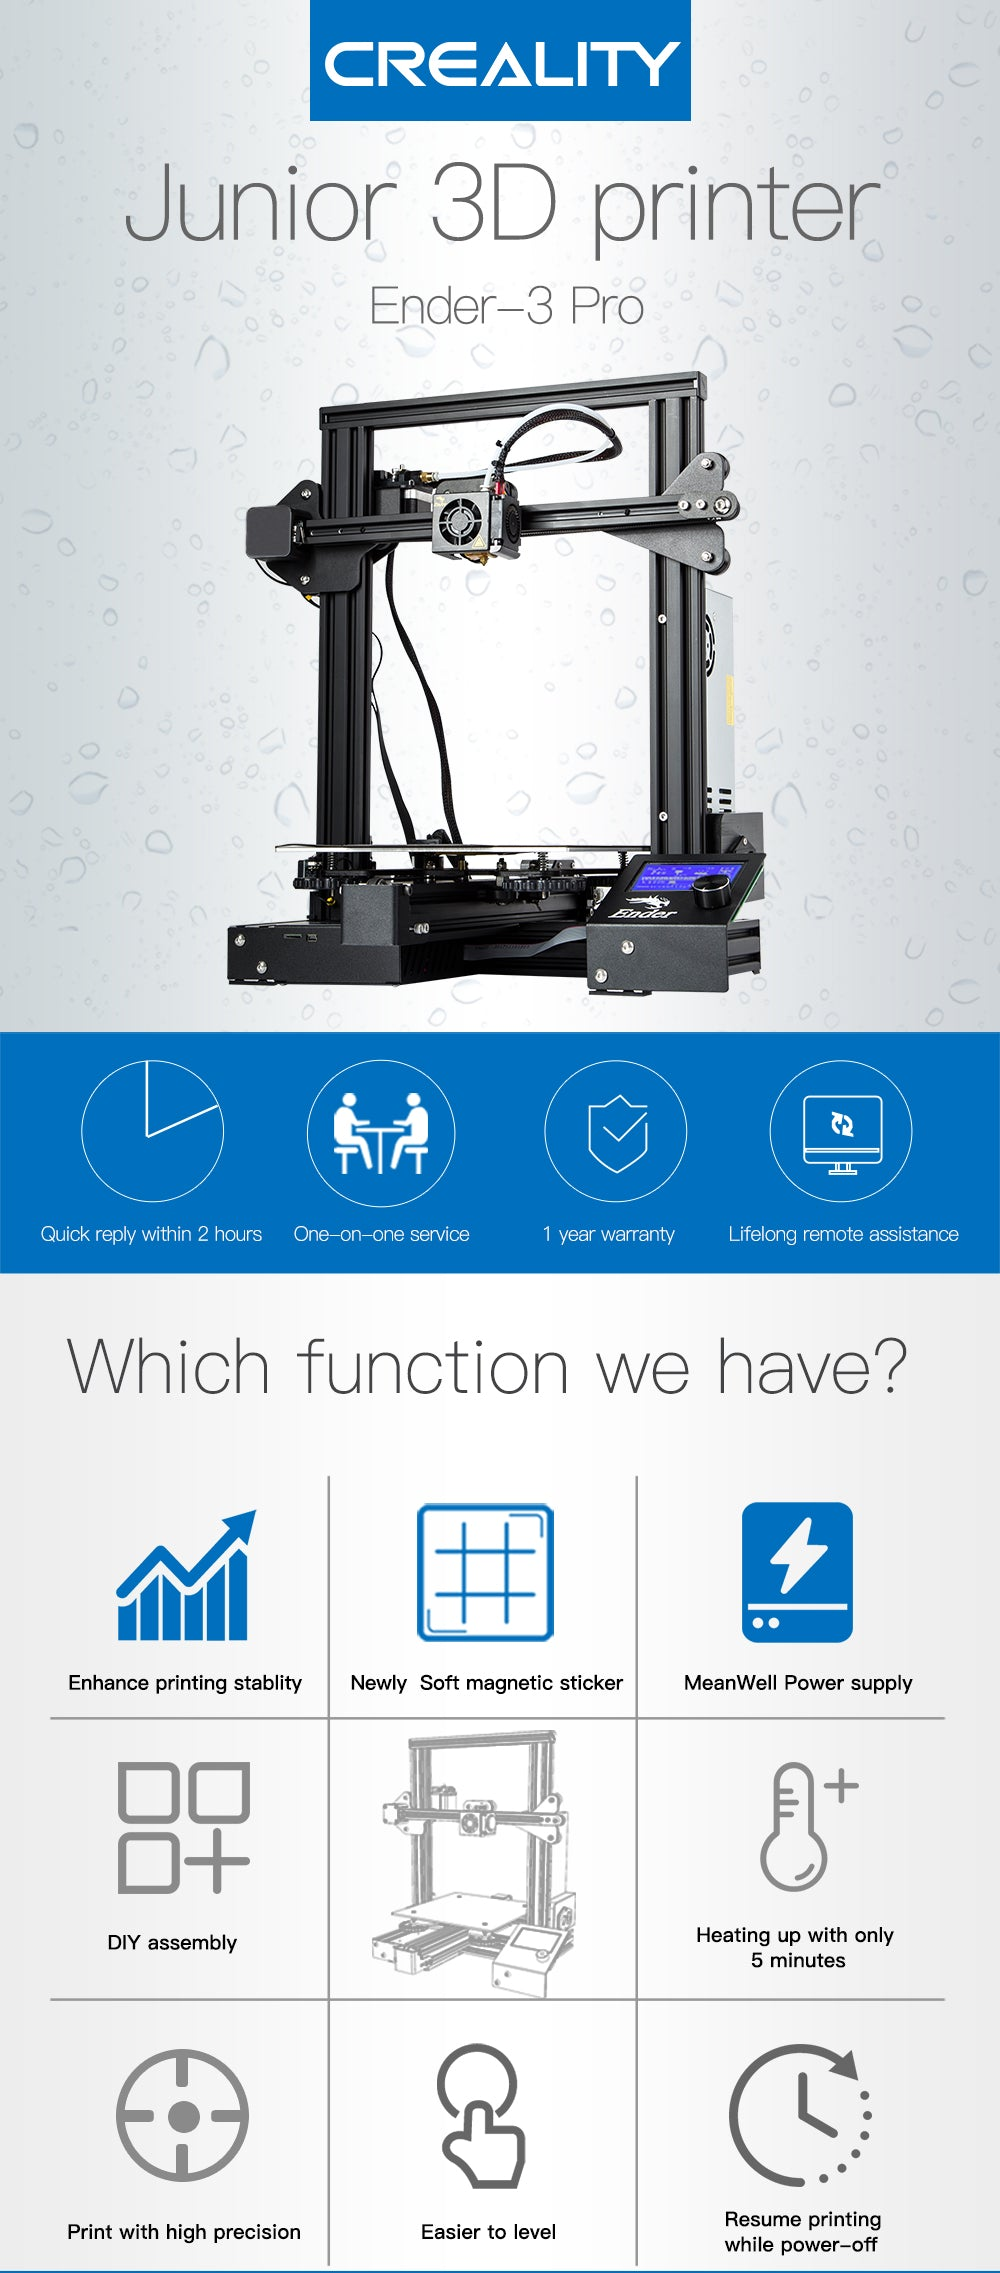 Comgrow BL Touch Auto-Leveling for Creality 3D Printer Ender 3 Ender 3 Pro//Emder-5